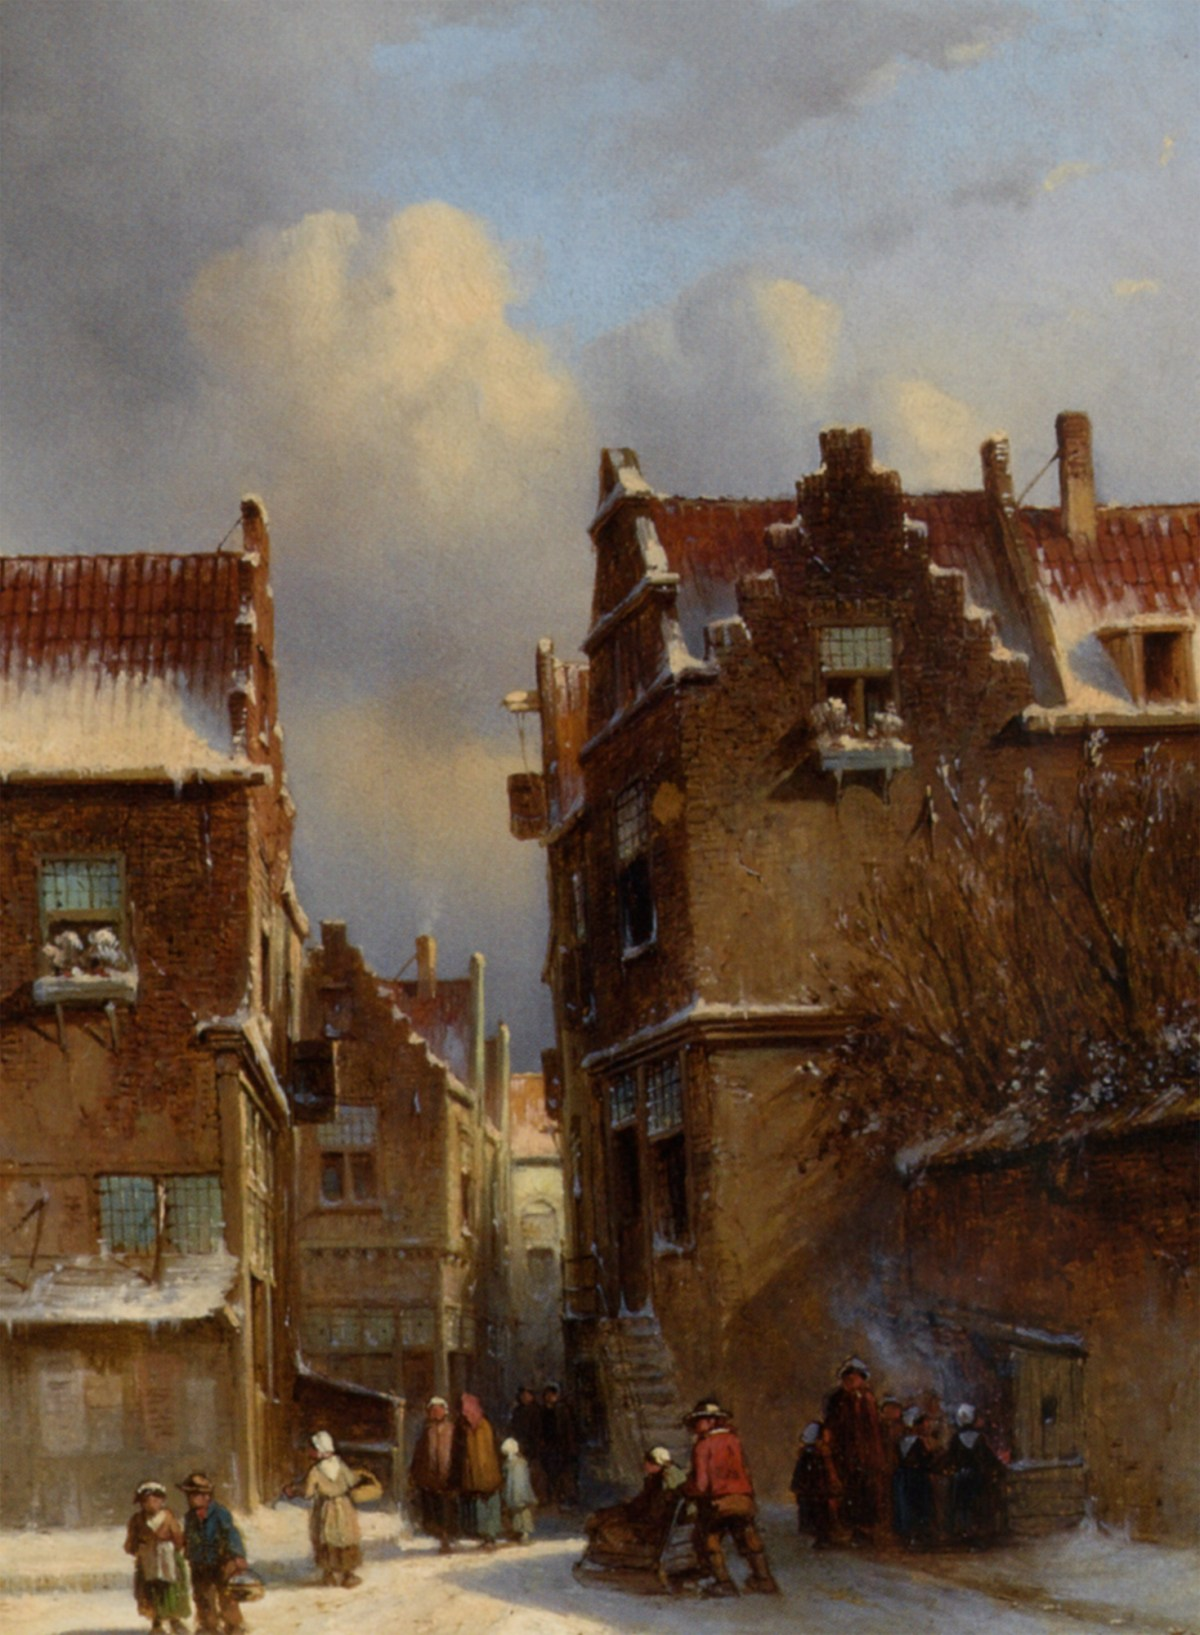 Figures Buying Chestnuts at a Stall in a Wintry Town by Pieter Gerard Vertin